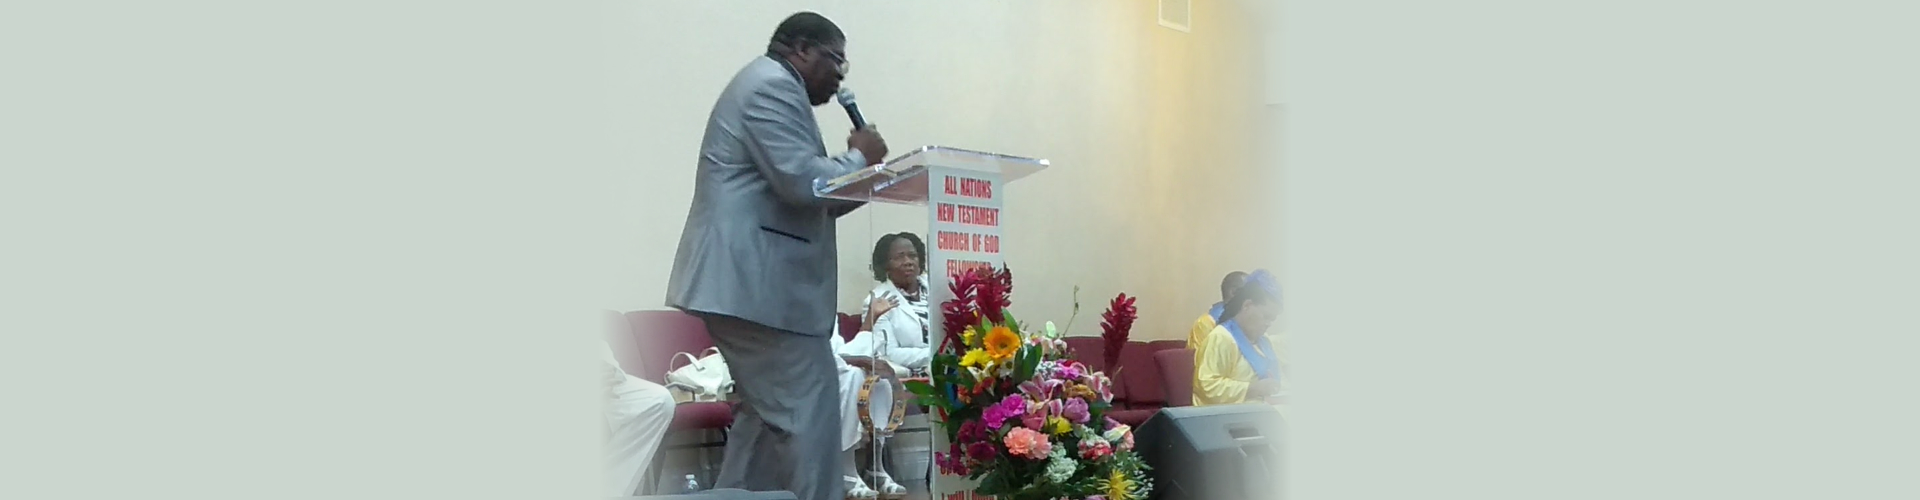 Pastor preaching on stage